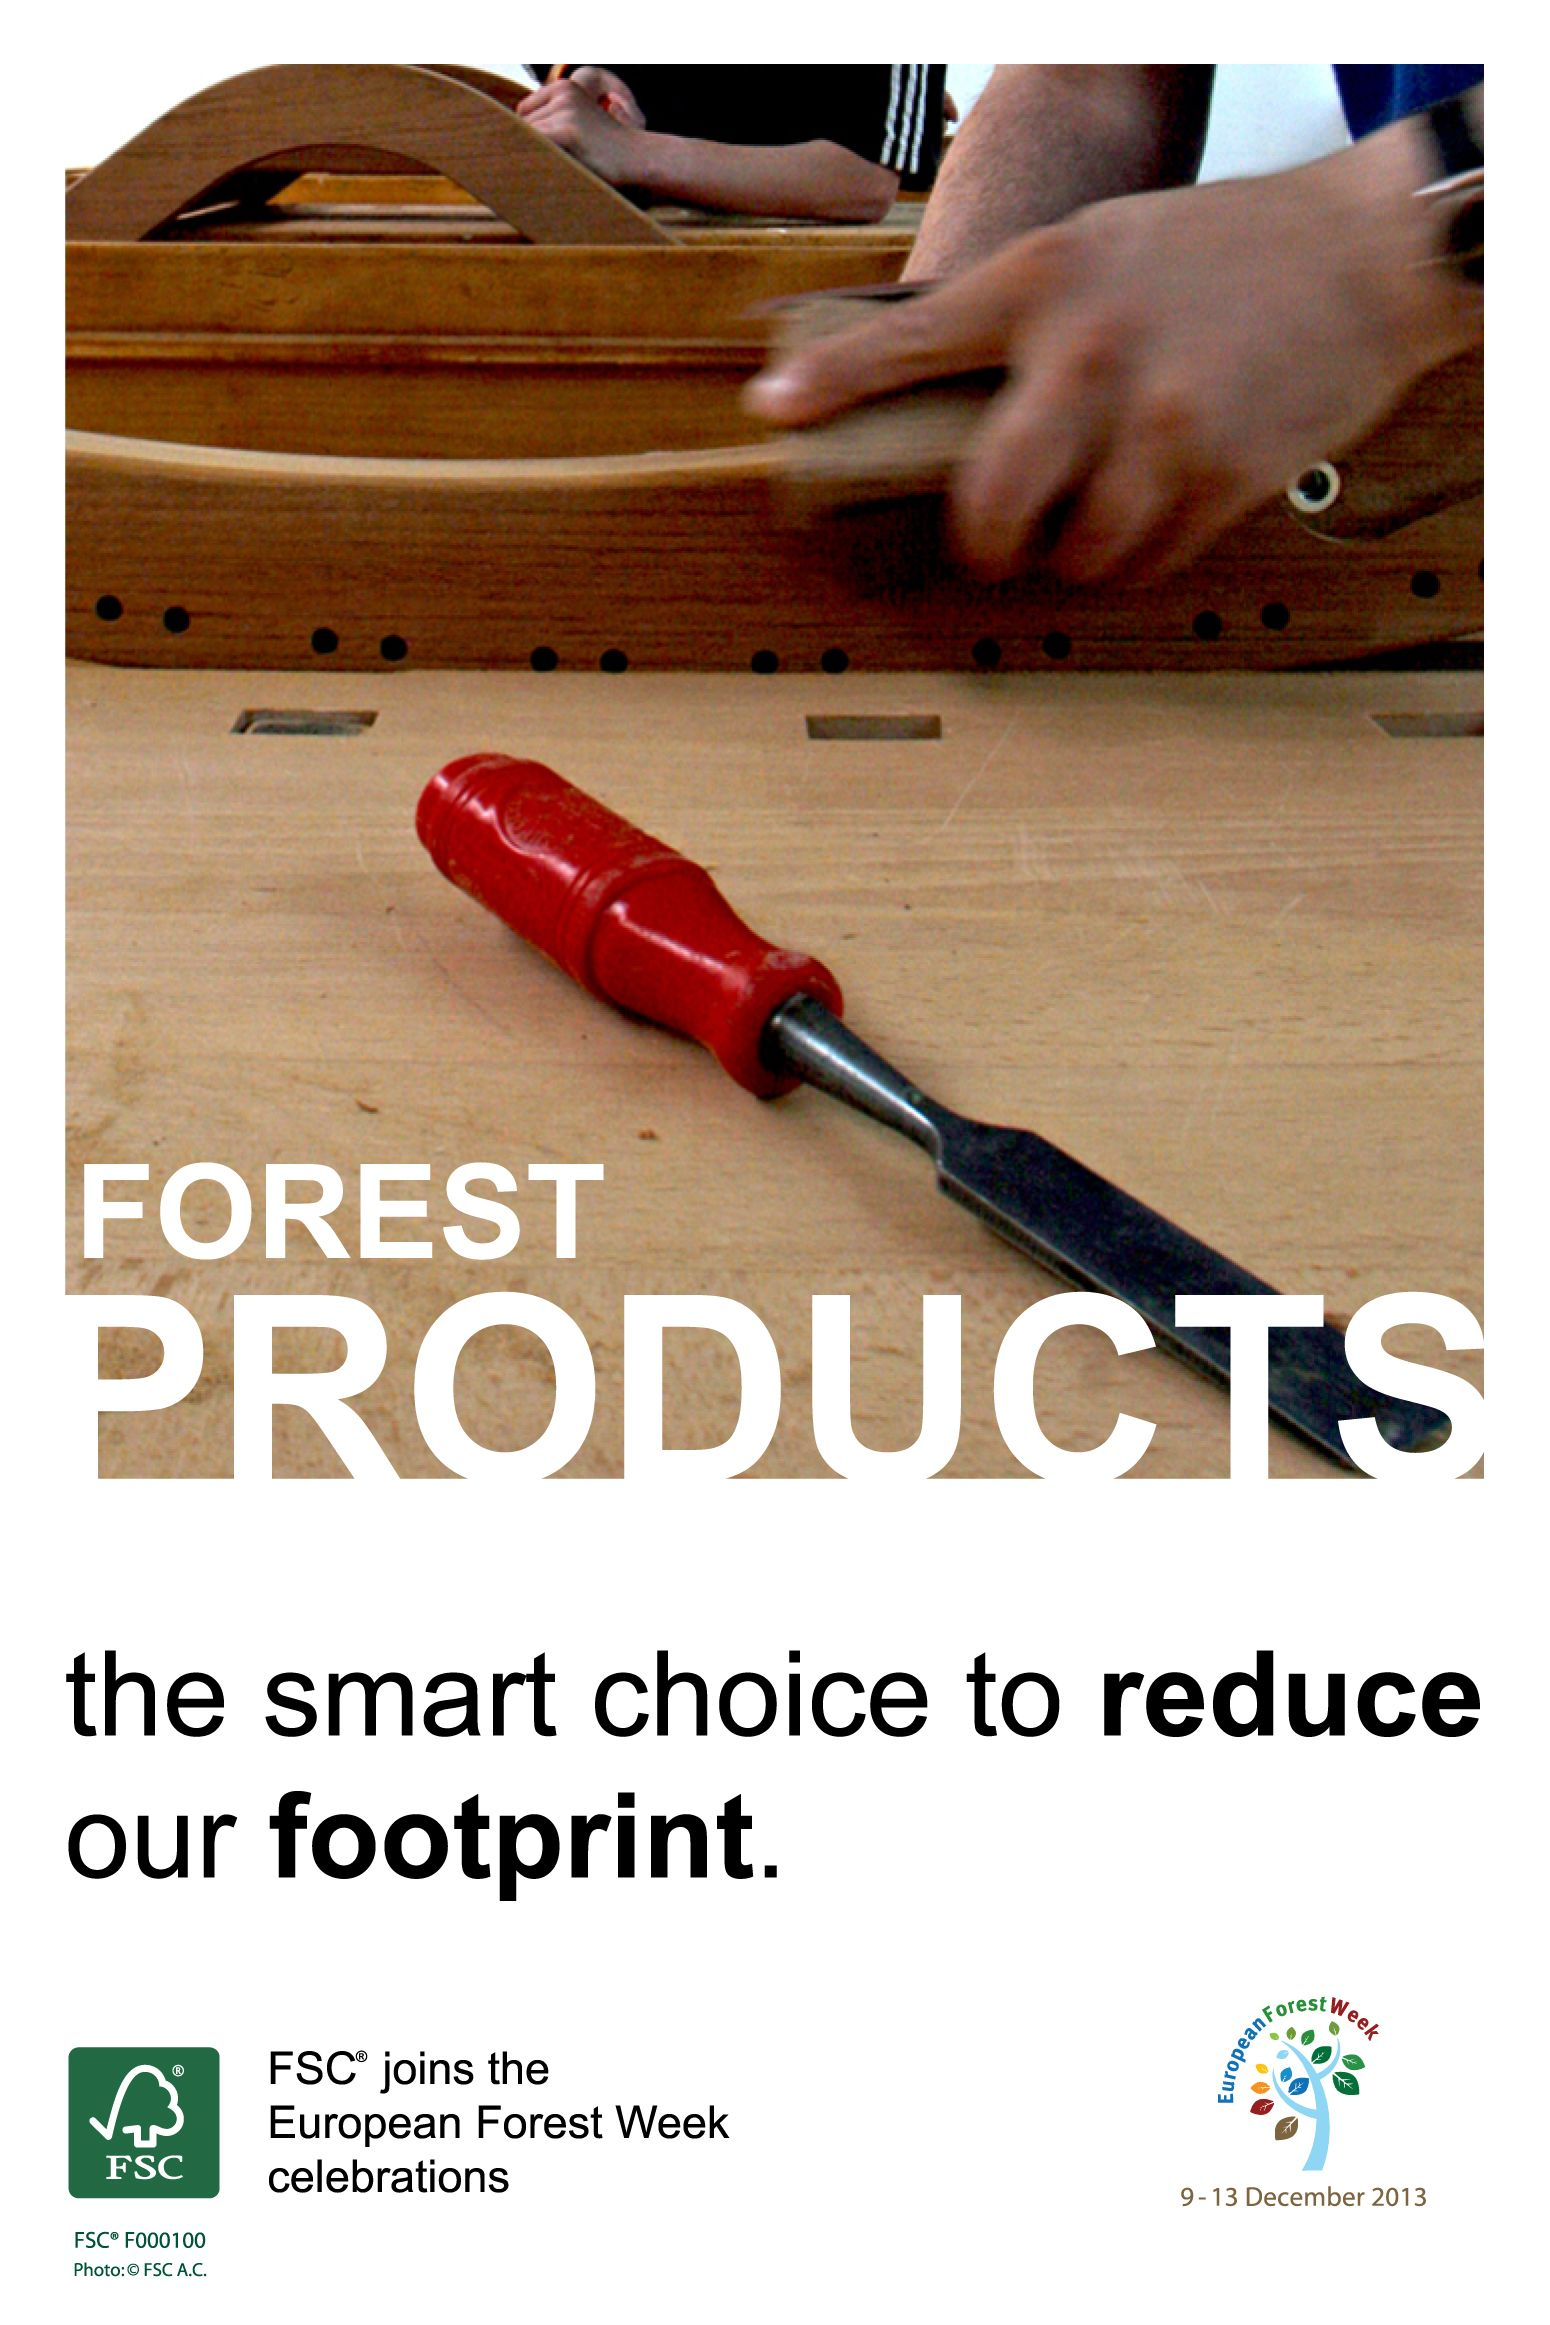 #FSC joins the #EFW2013 celebrations! #Forest products: the smart choice to reduce our footprint. #FSC forest stewardship considers the impact of management regimes on forest carbon cycles and aims at maintaining, restoring or enhancing forest carbon resources.